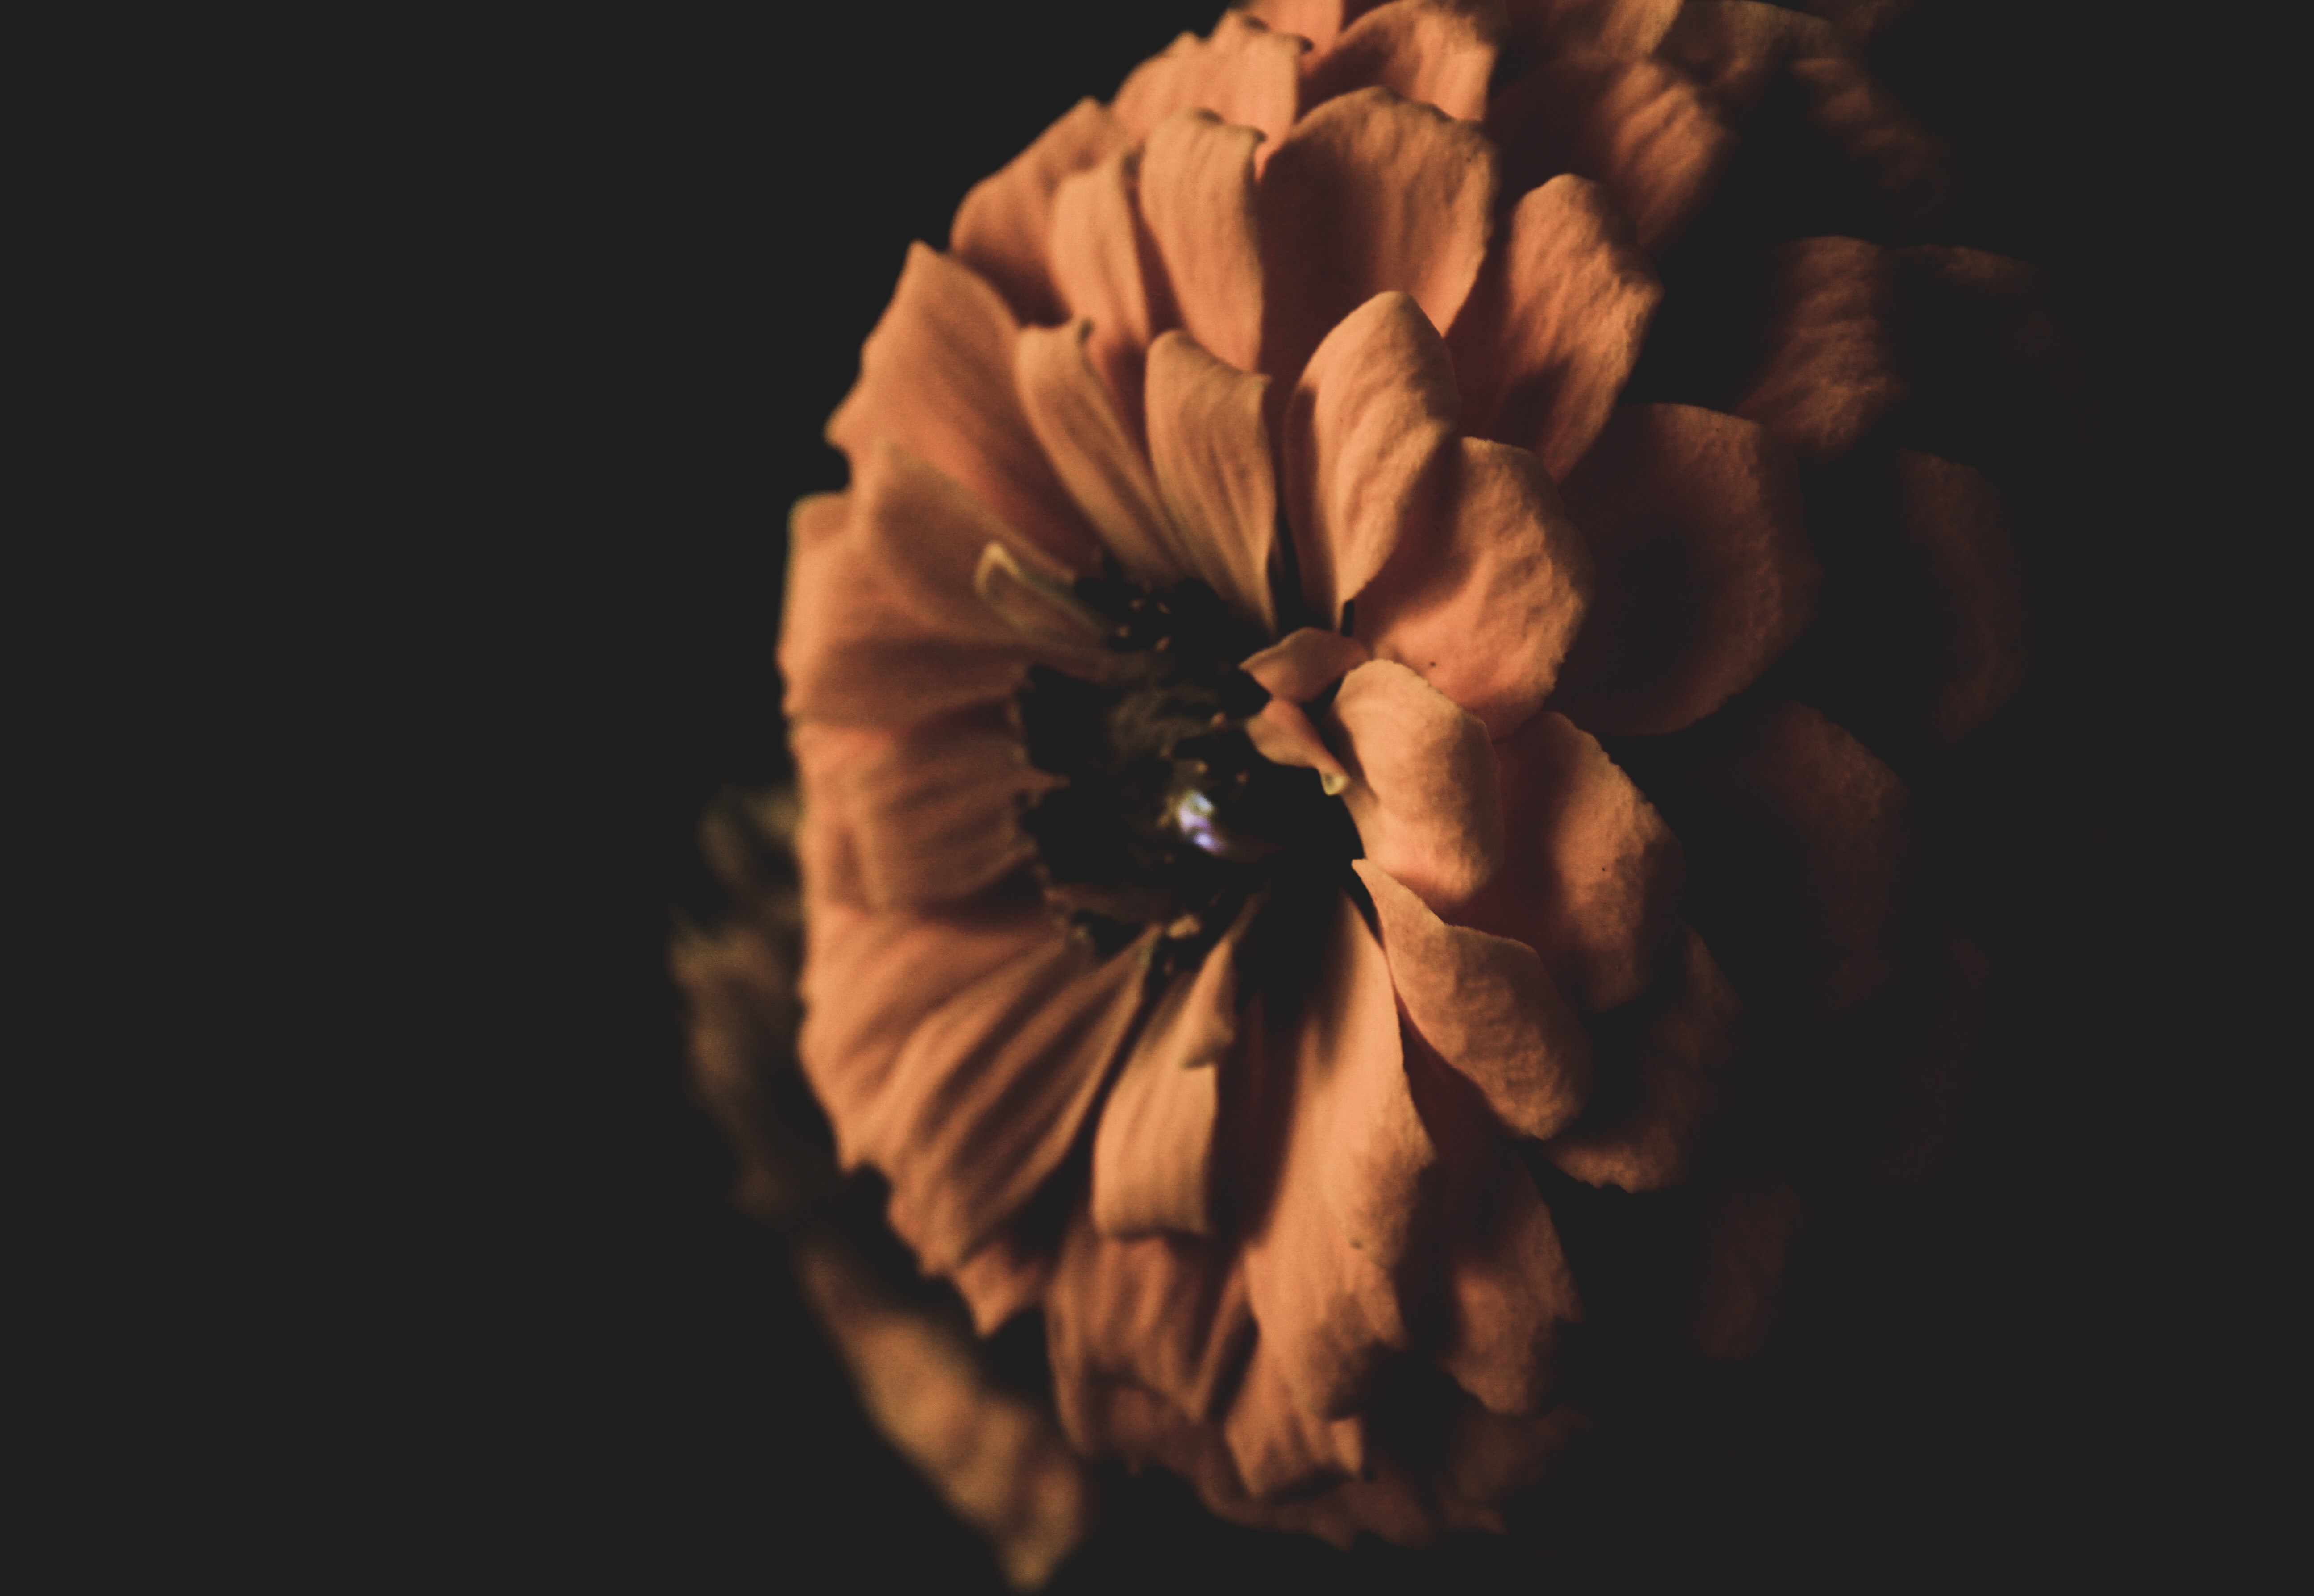 closeup photo of brown petaled flower against black background